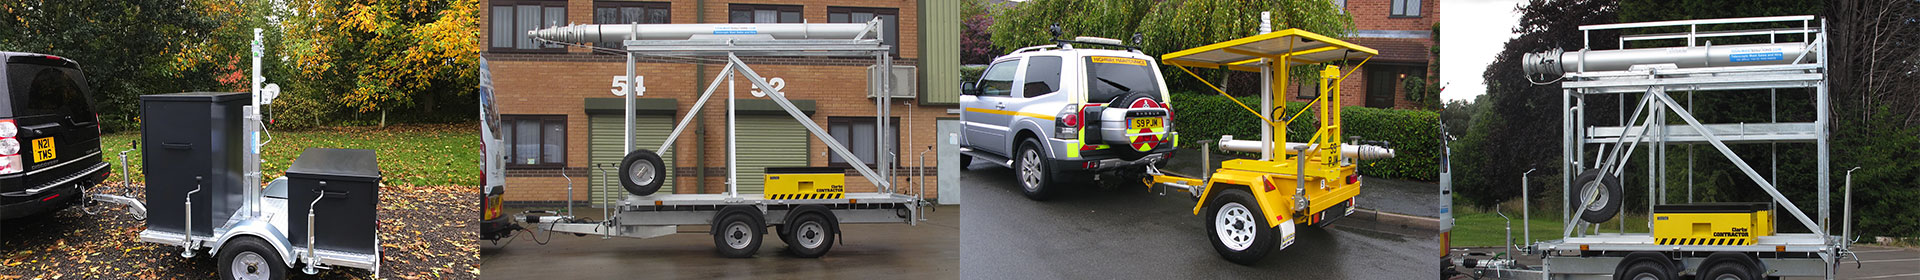 Trailer Mast Systems